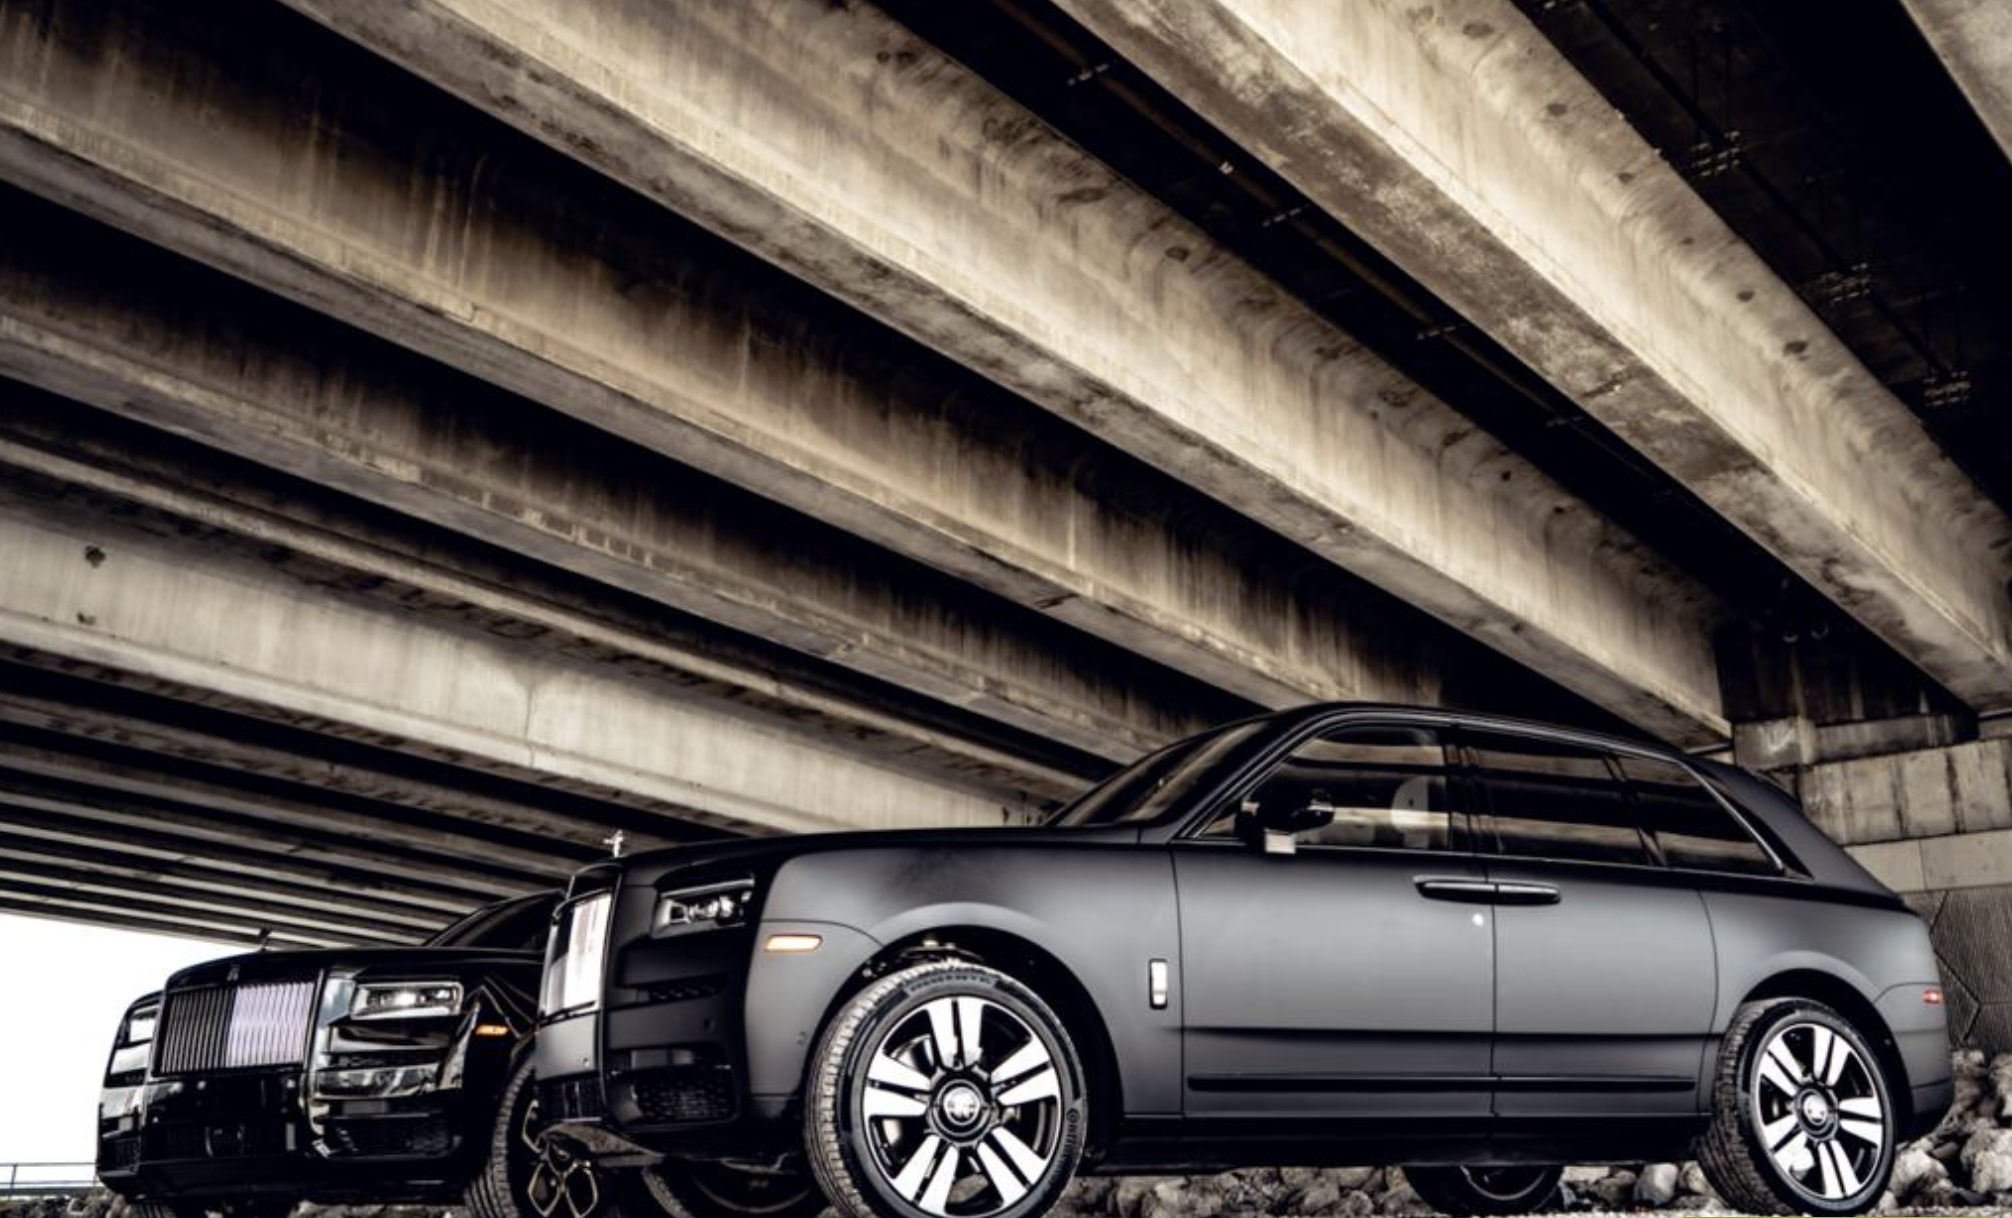 Image #2 of our  2021 ROLLS ROYCE CULLINAN - MATT BLACK    In Miami Fort Lauderdale Palm Beach South Florida